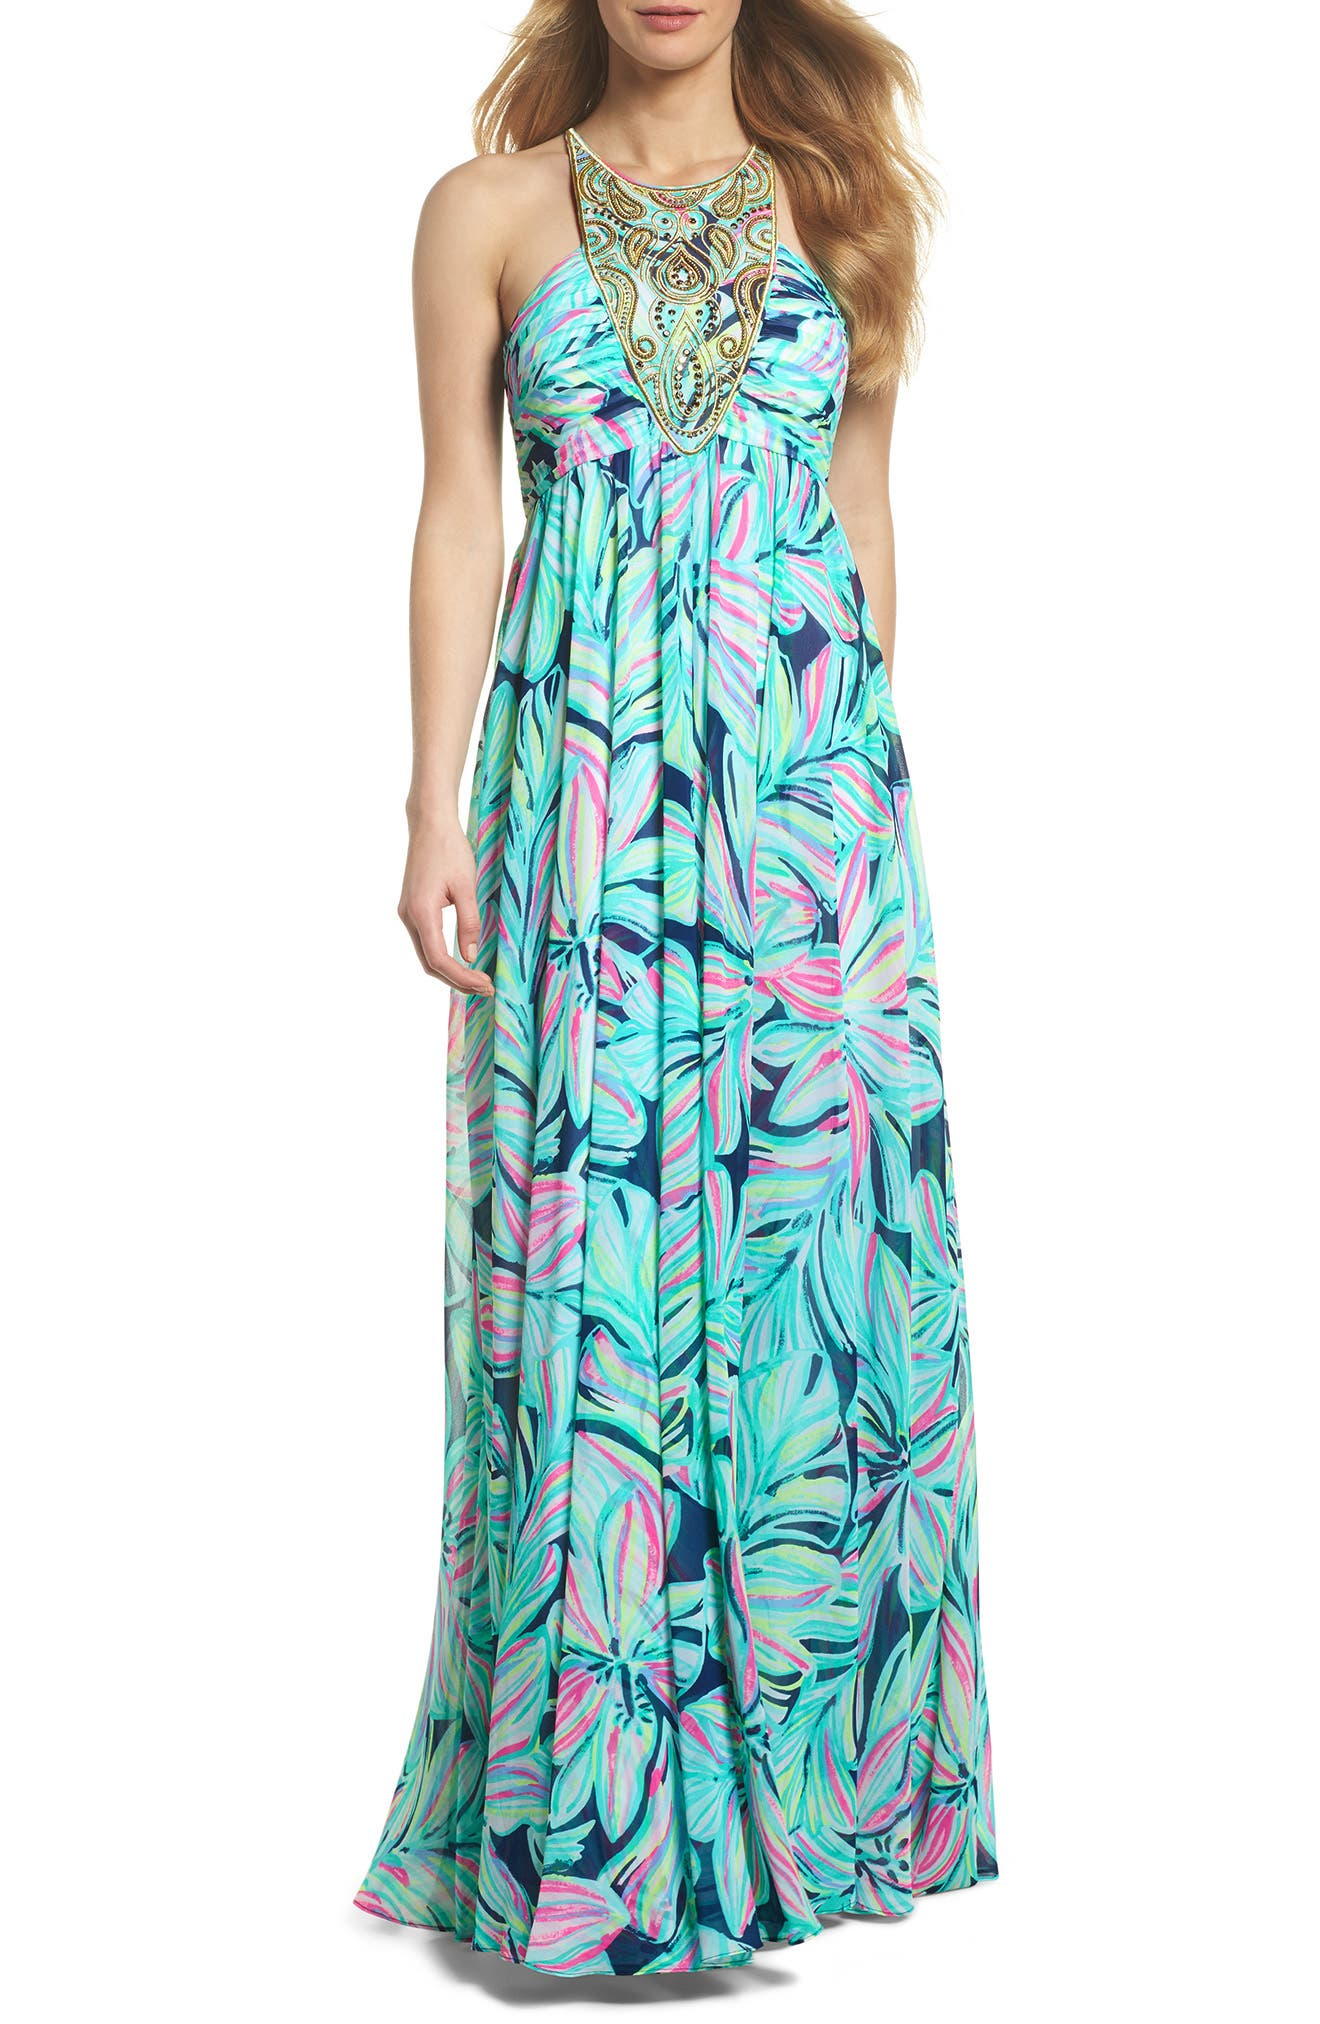 Lannette Embellished Chiffon Maxi Dress,                         Main,                         color, High Tide Dancing Lady